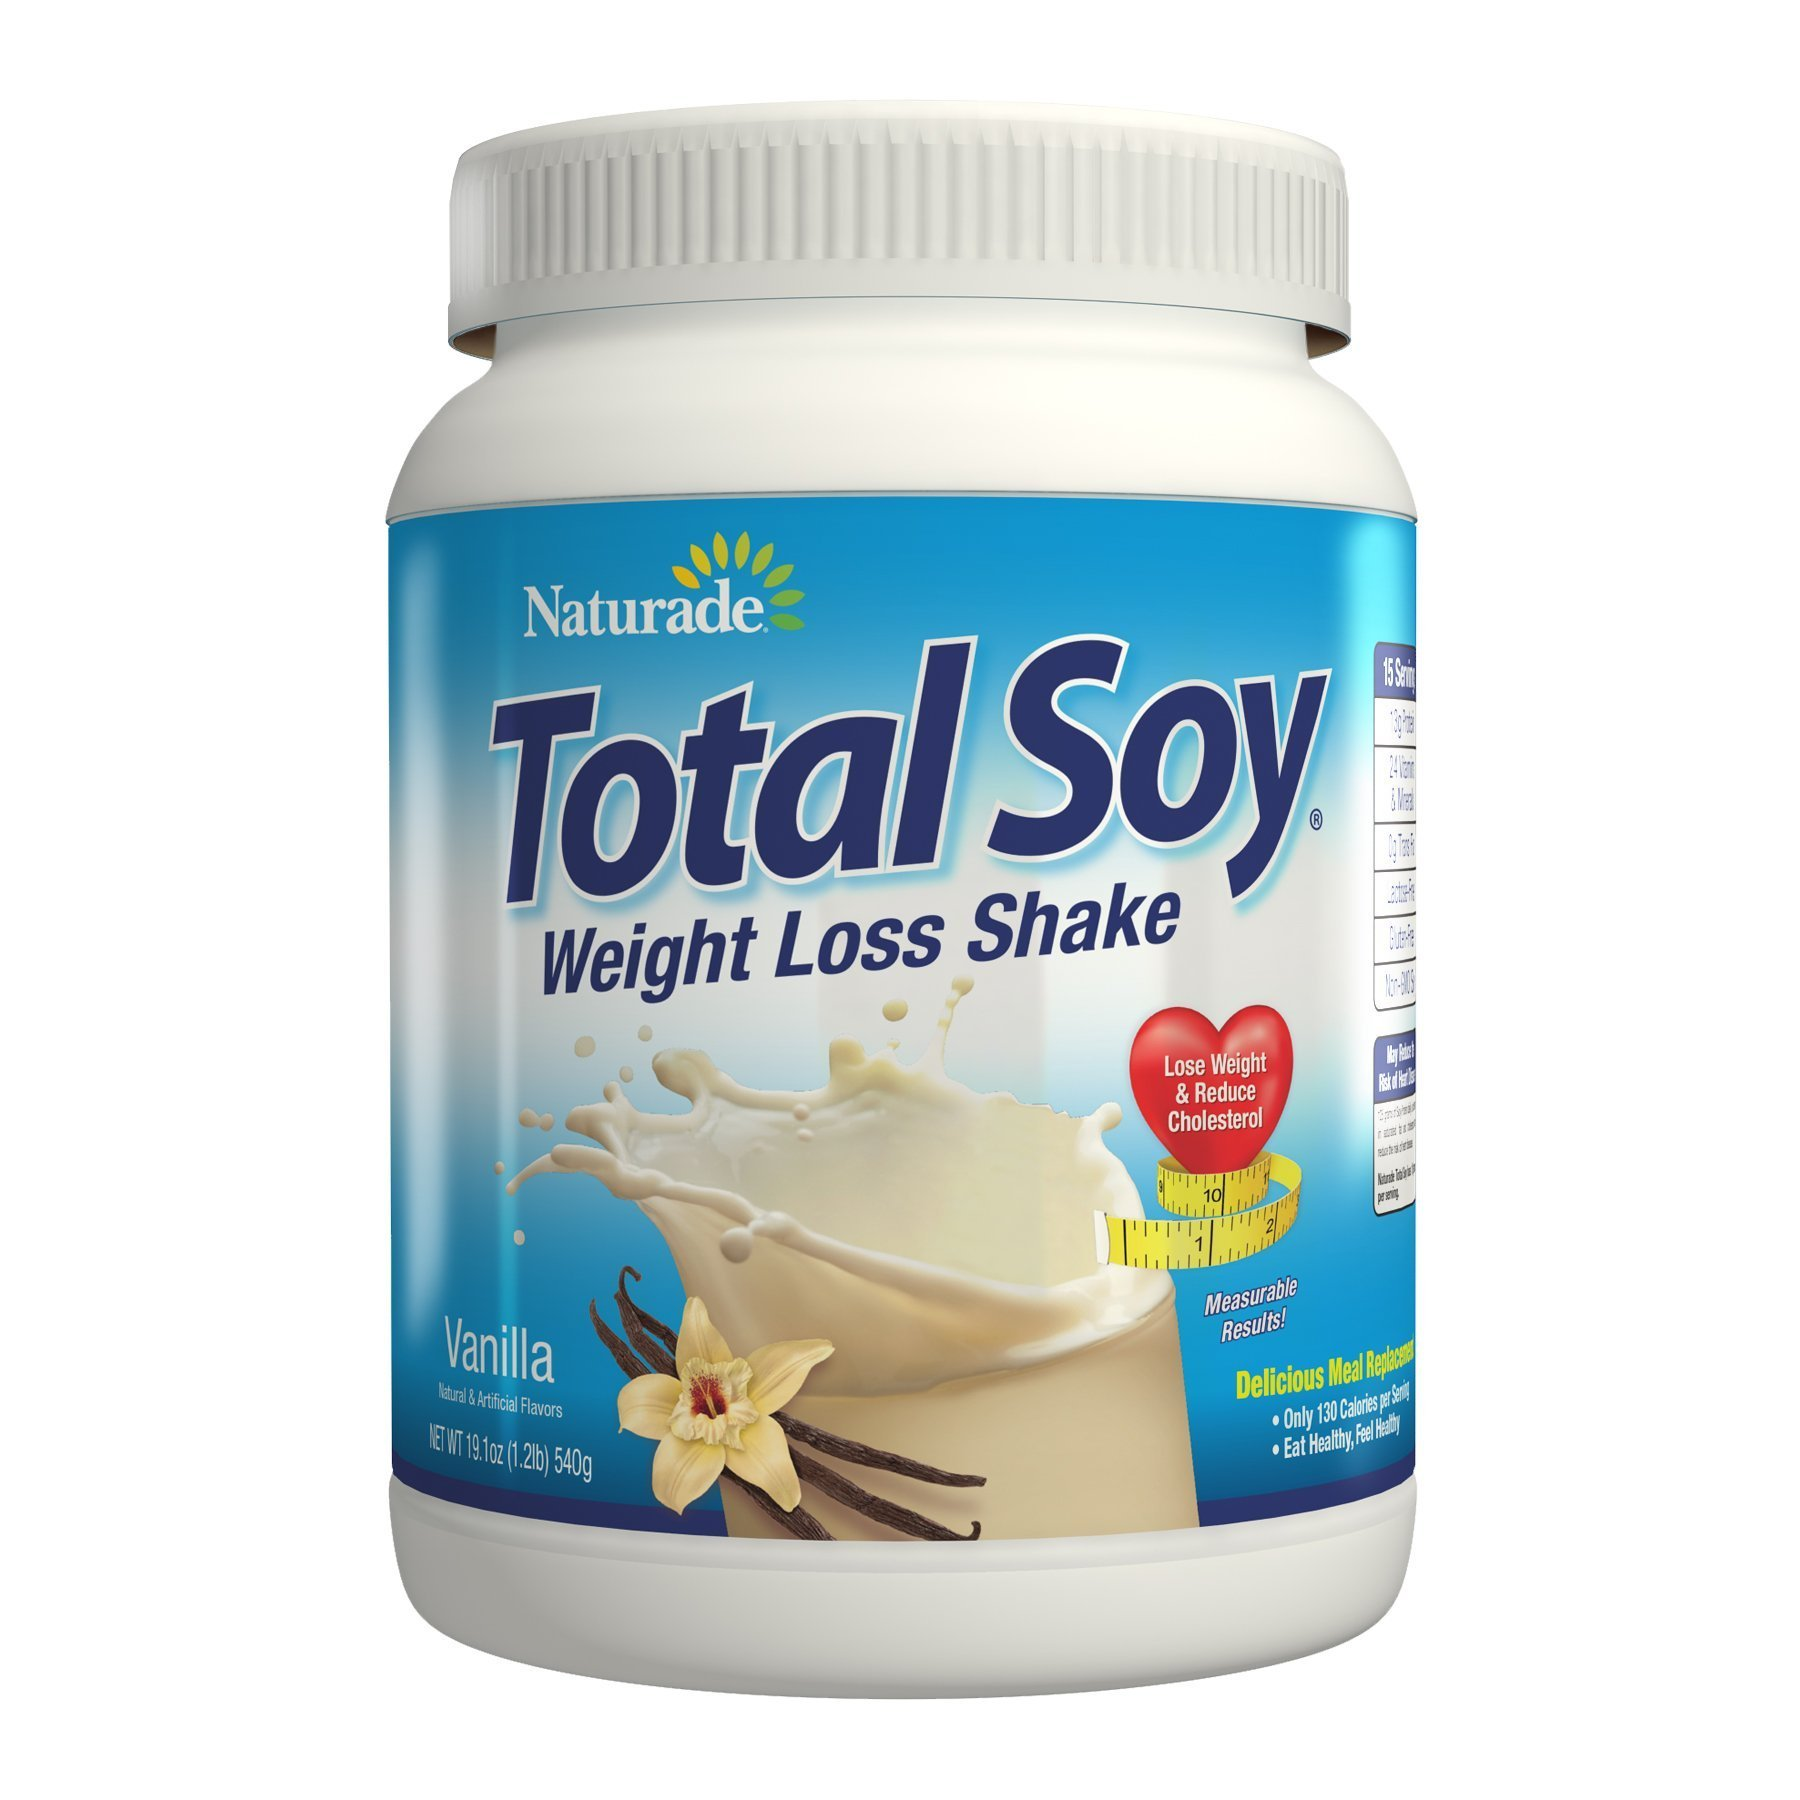 Compare Meal Replacement Shakes Has Compiled Free Weight Loss Shake Reviews For Some Of The Most Por Out There